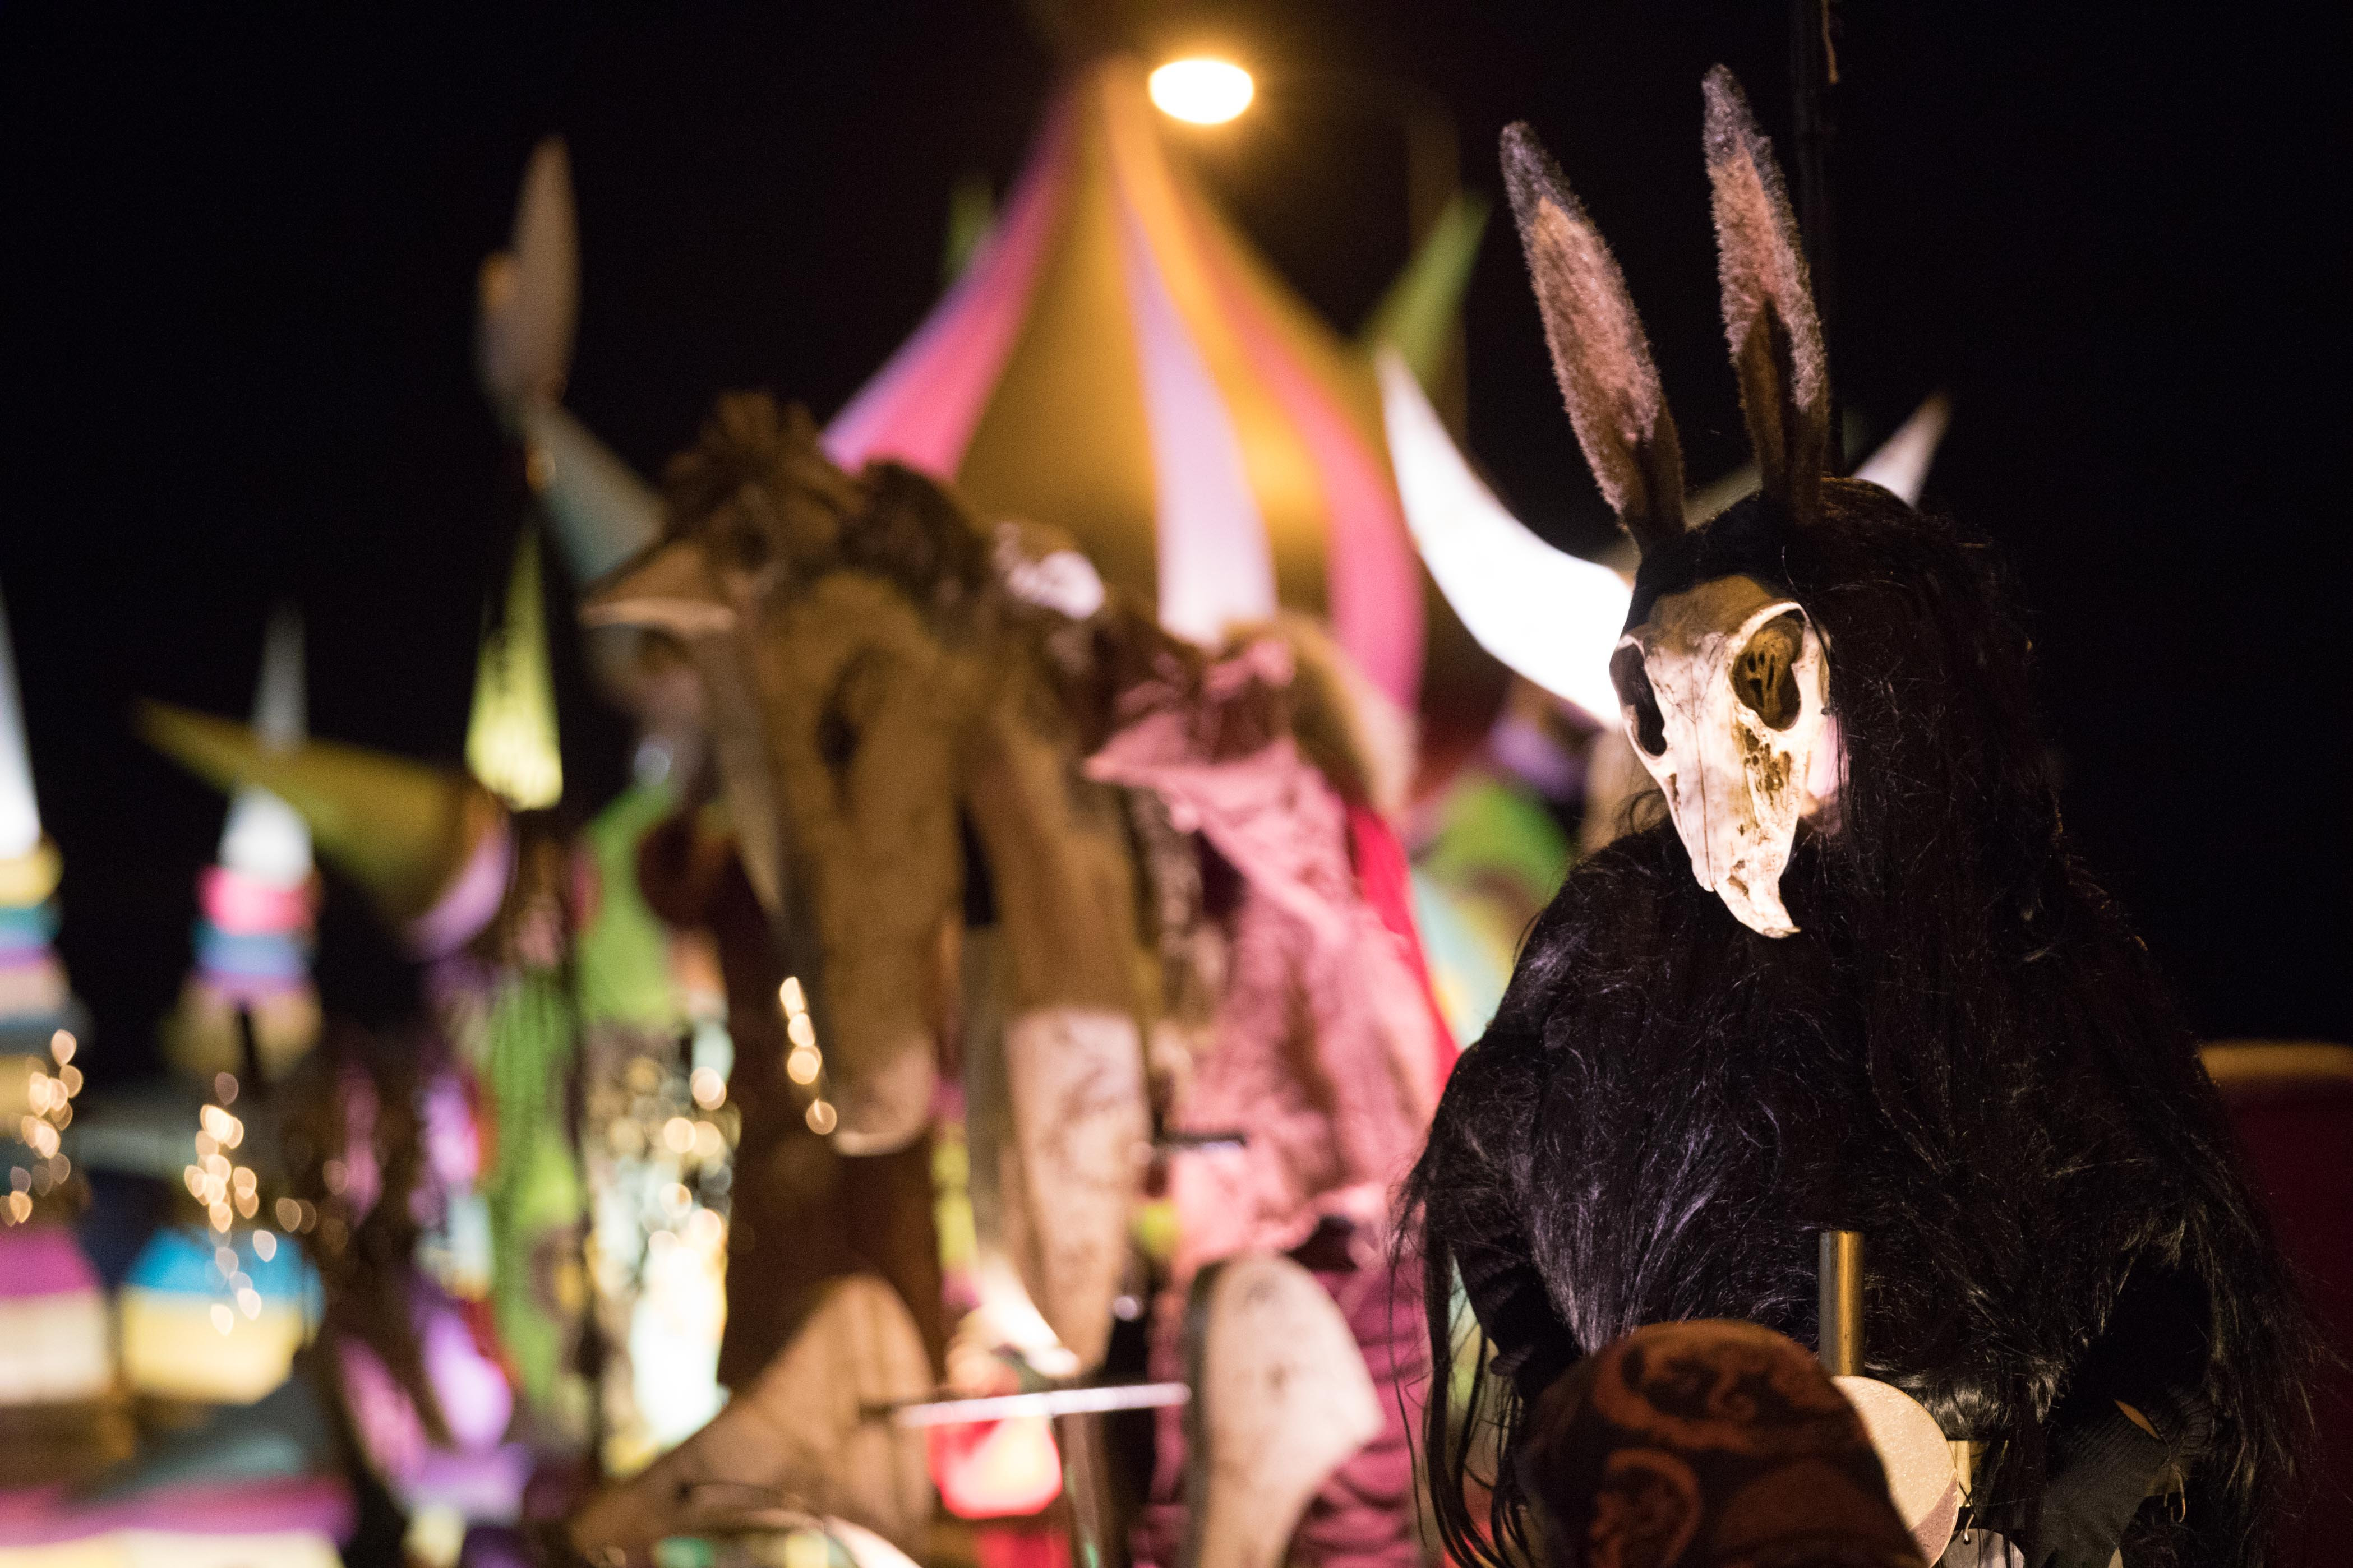 When light turns to dark and the veil between the worlds of the living and the dead thins, the creatures of Samhain, Ireland's ancient New Year, come to life at Púca Festival.